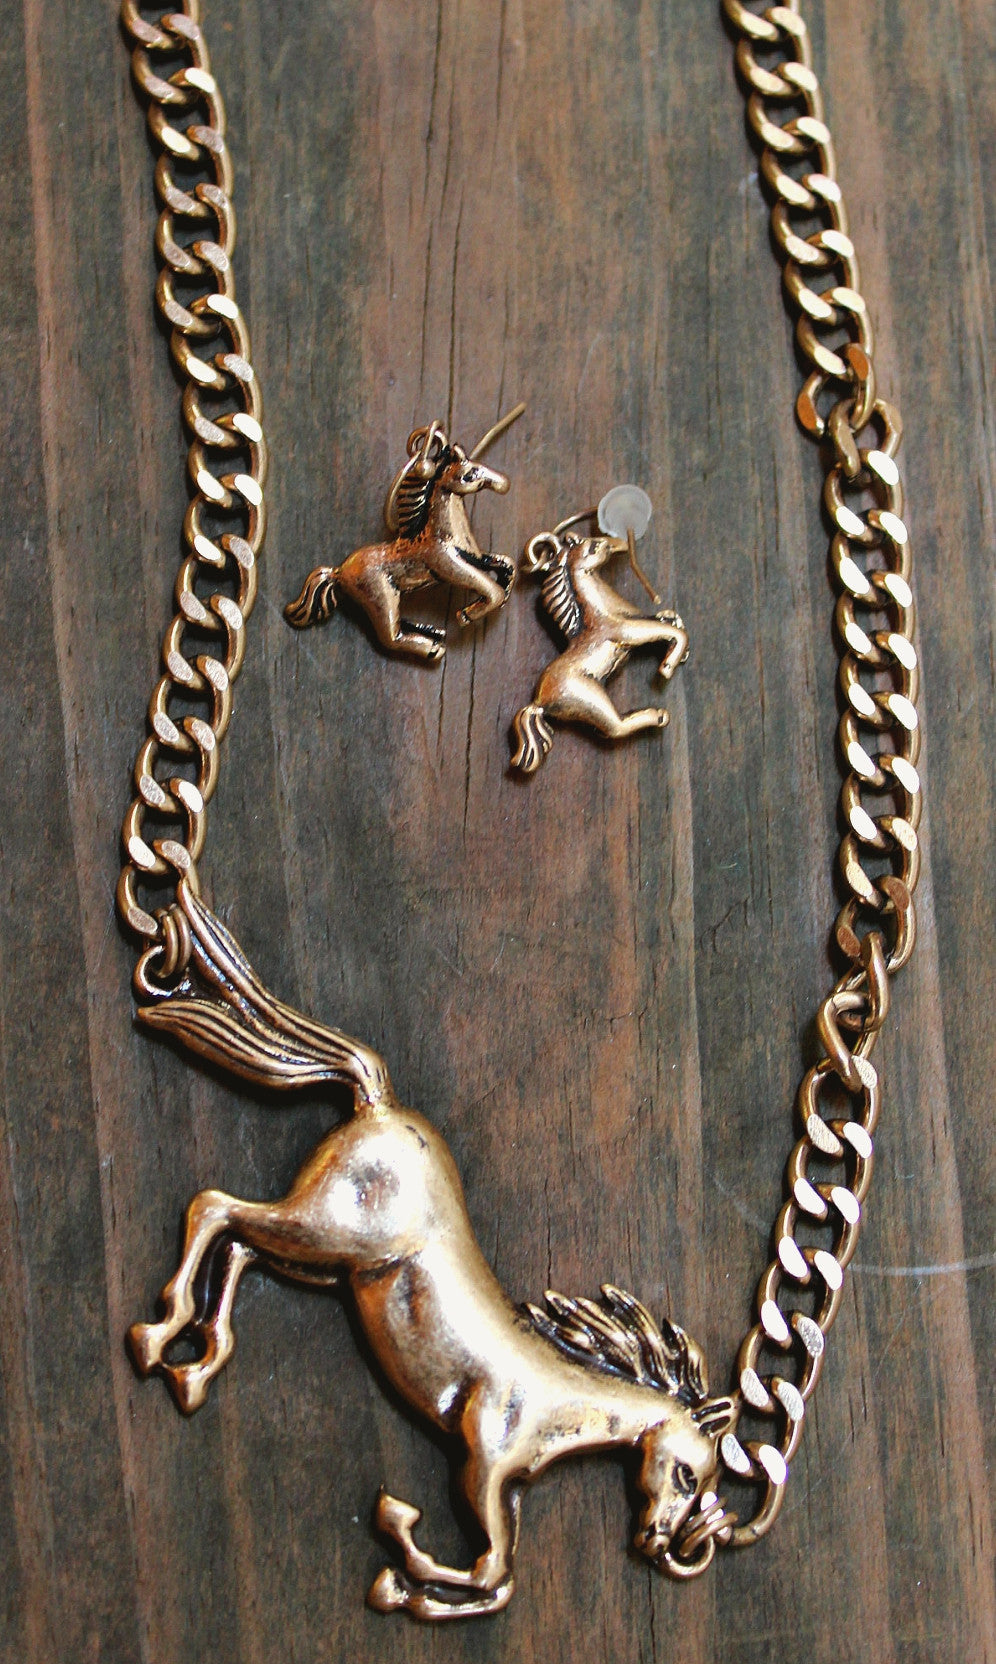 Running Horse Ornate Necklace & Earring Set